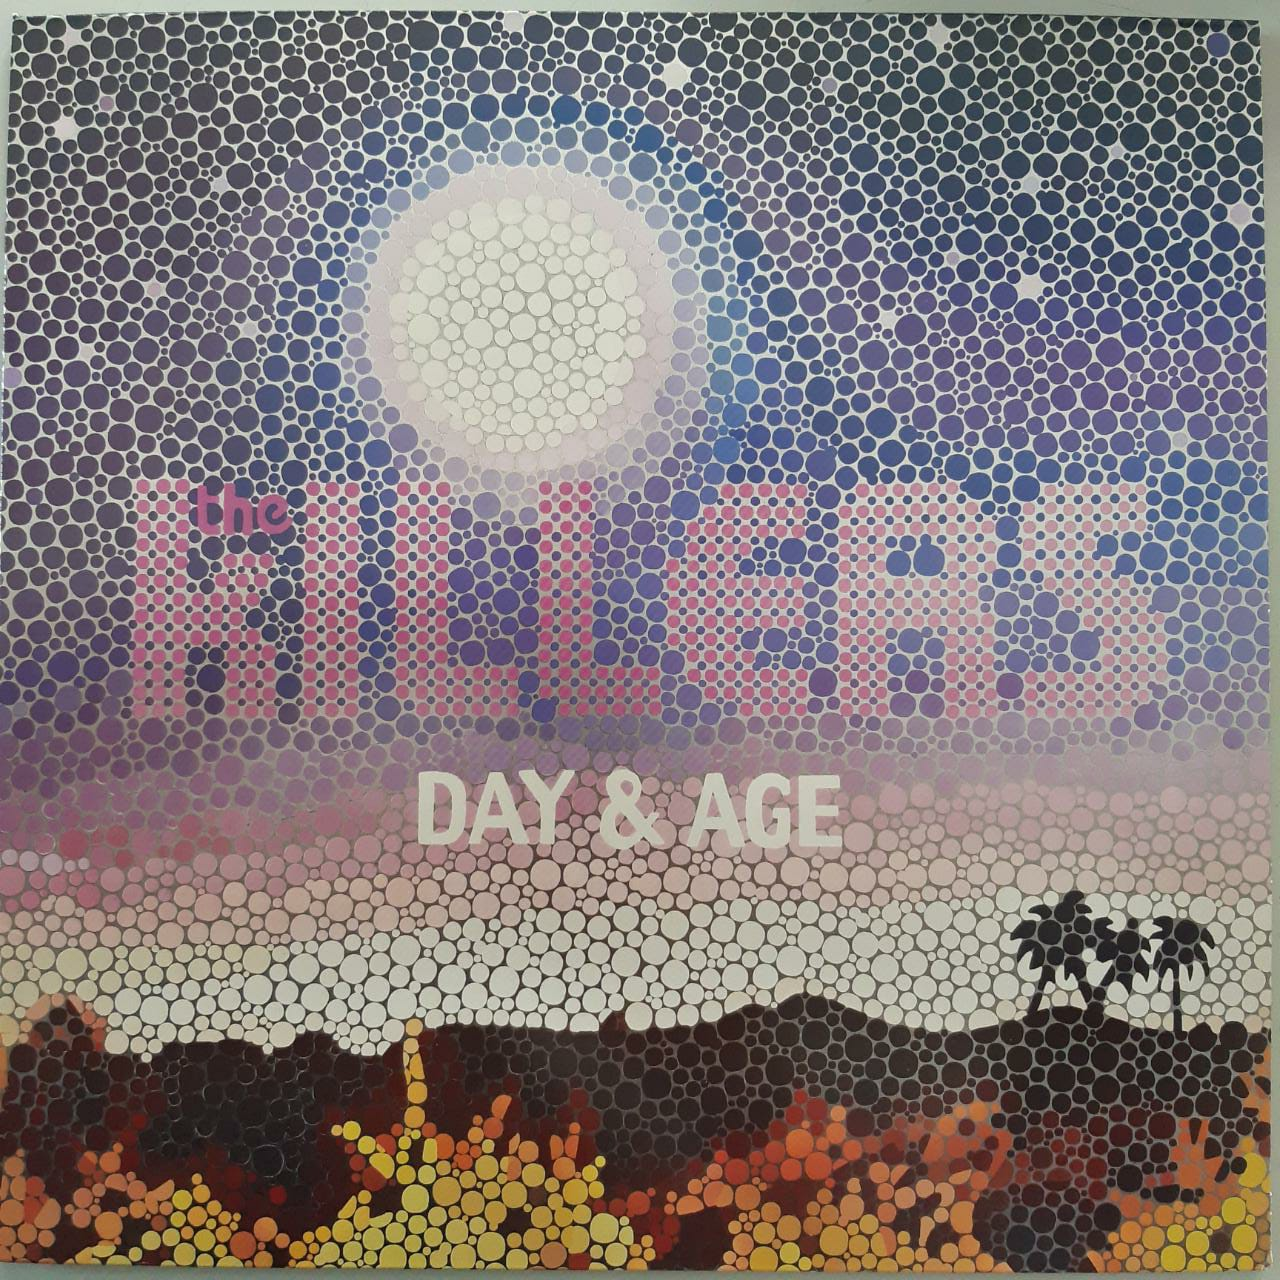 Lp Vinil The Killers Day & Age